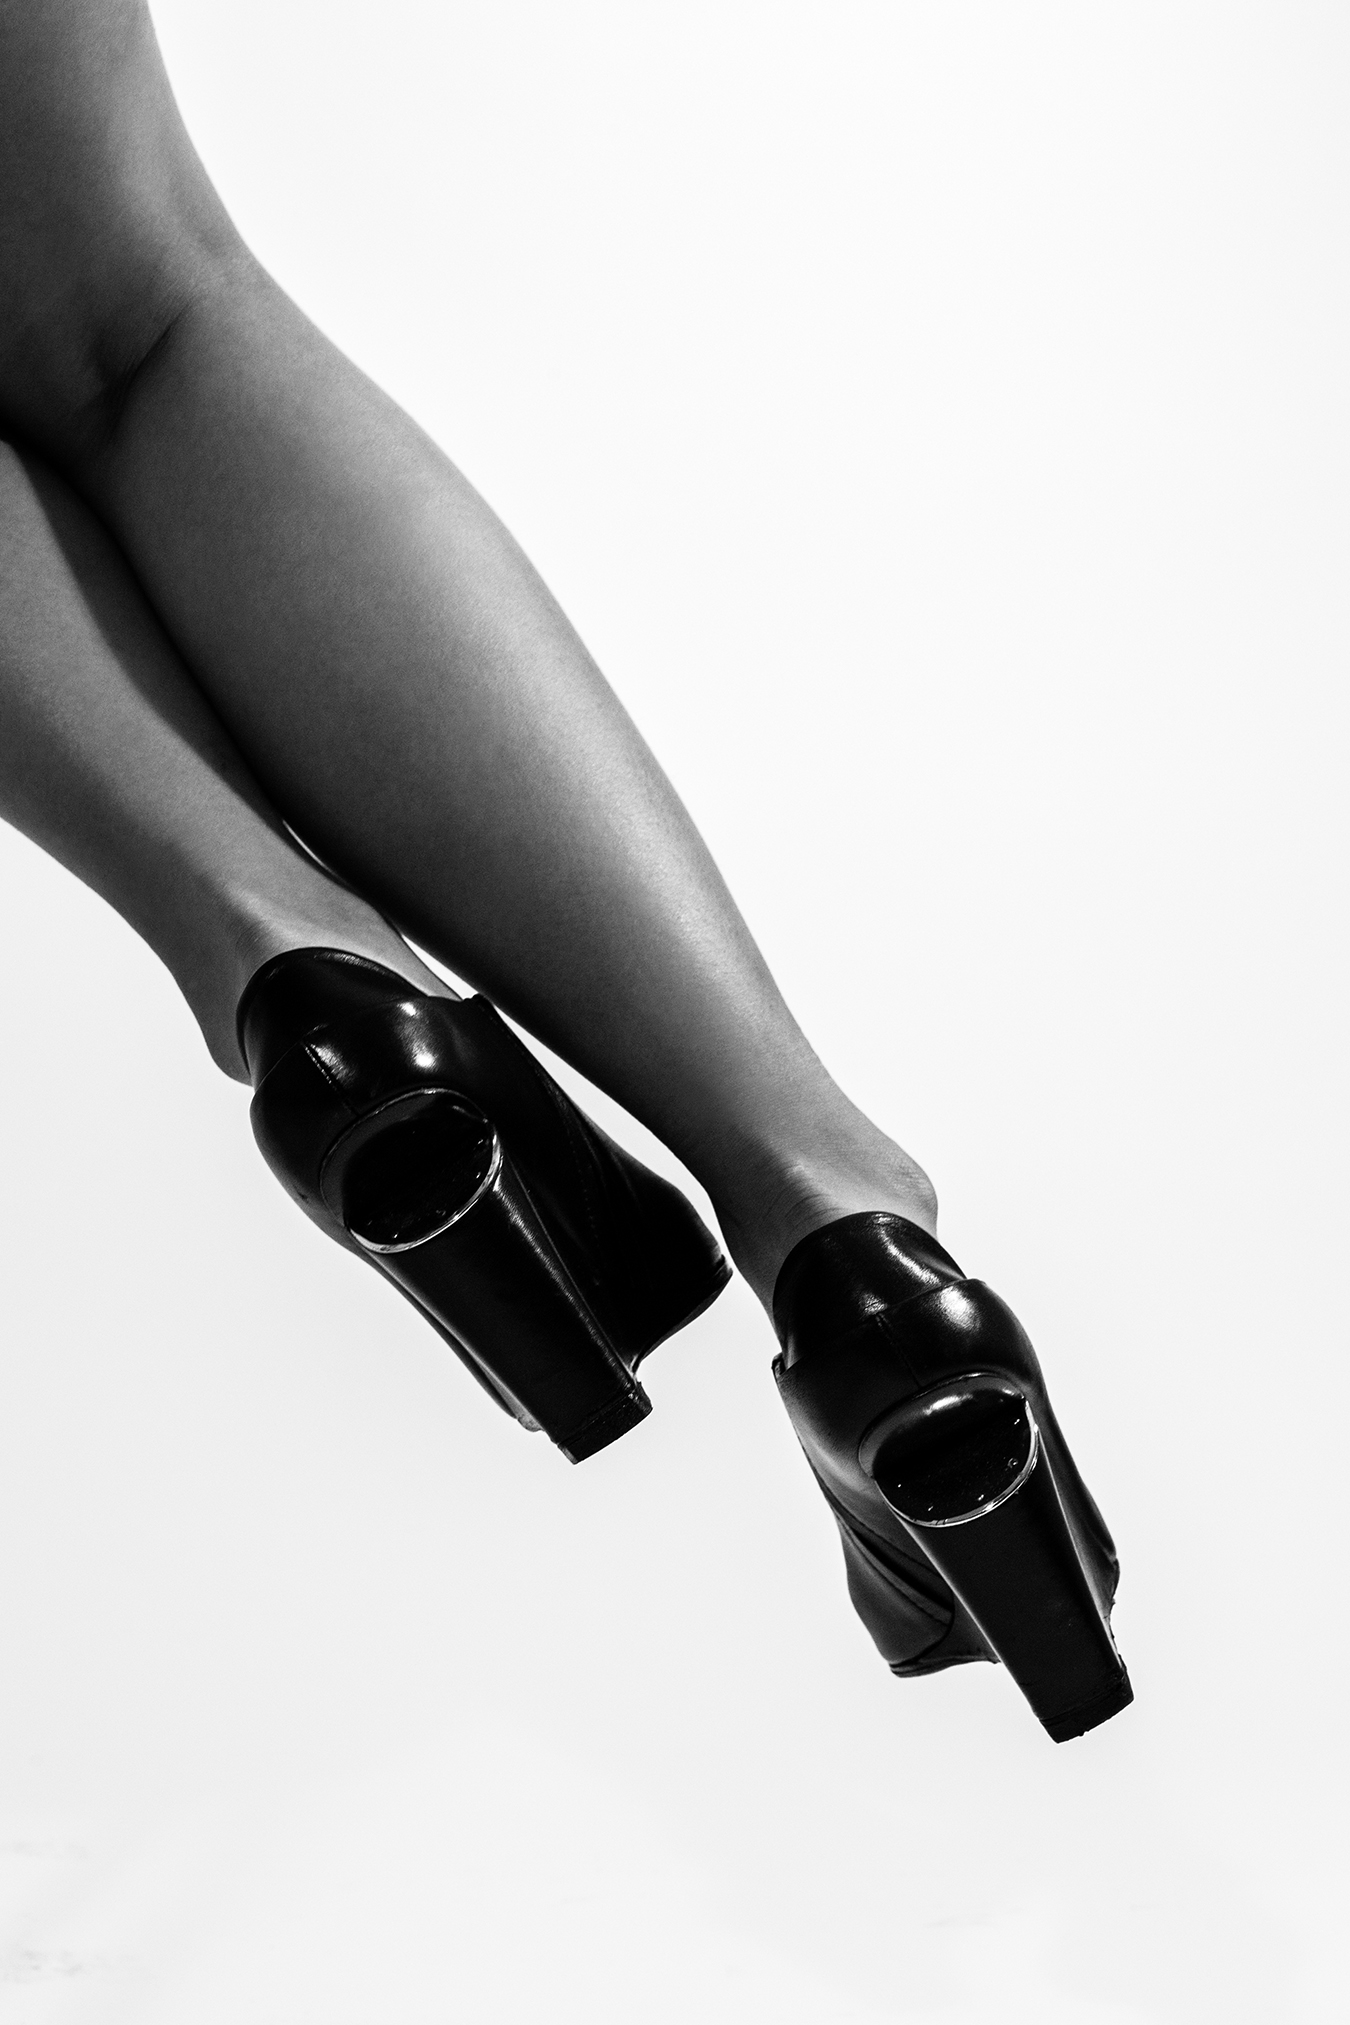 Wing_Hei_Emily_Cheng_Assignment_2_Still_Life_Objects_of_Desire_Shoes-8